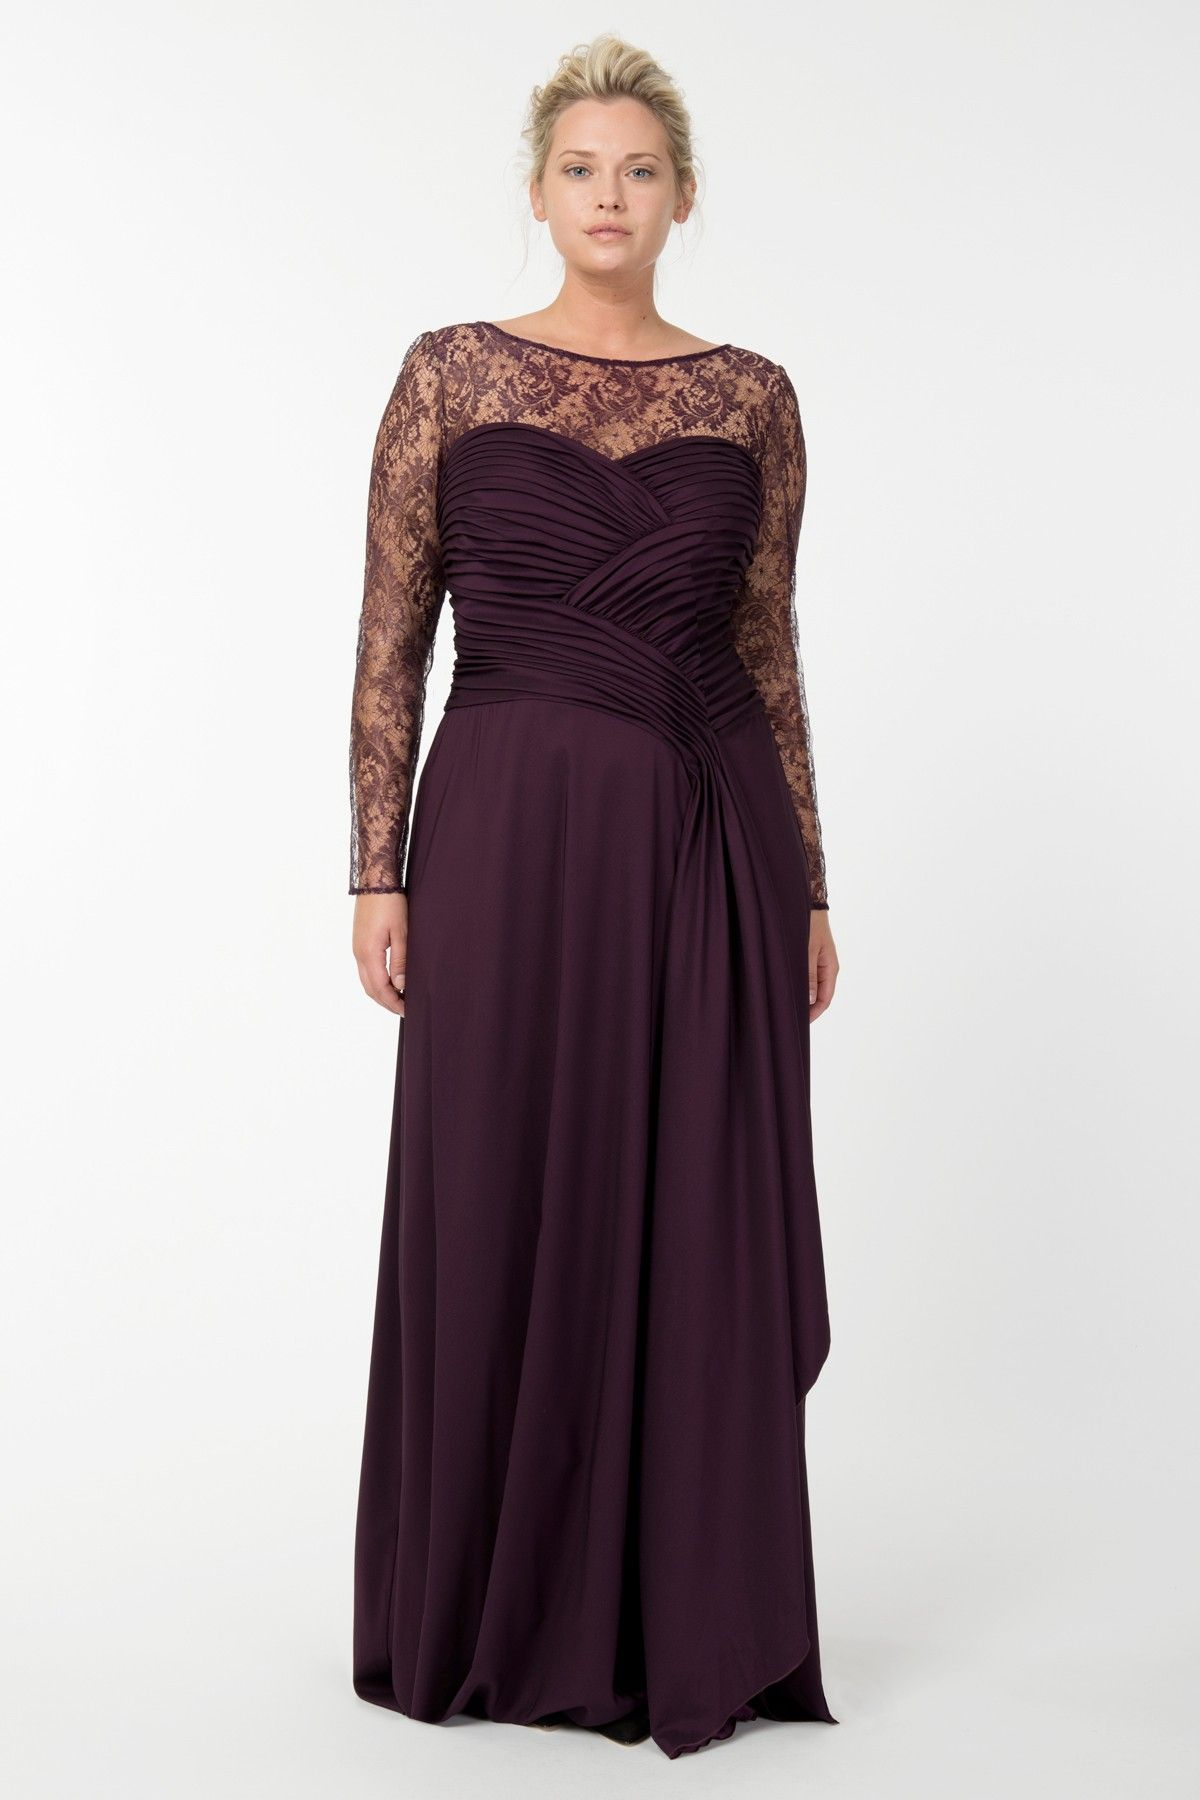 fdfd784215e27 Long Sleeve Charmeuse Gown in Barberry - Evening Gowns - Plus Size Evening  Shop